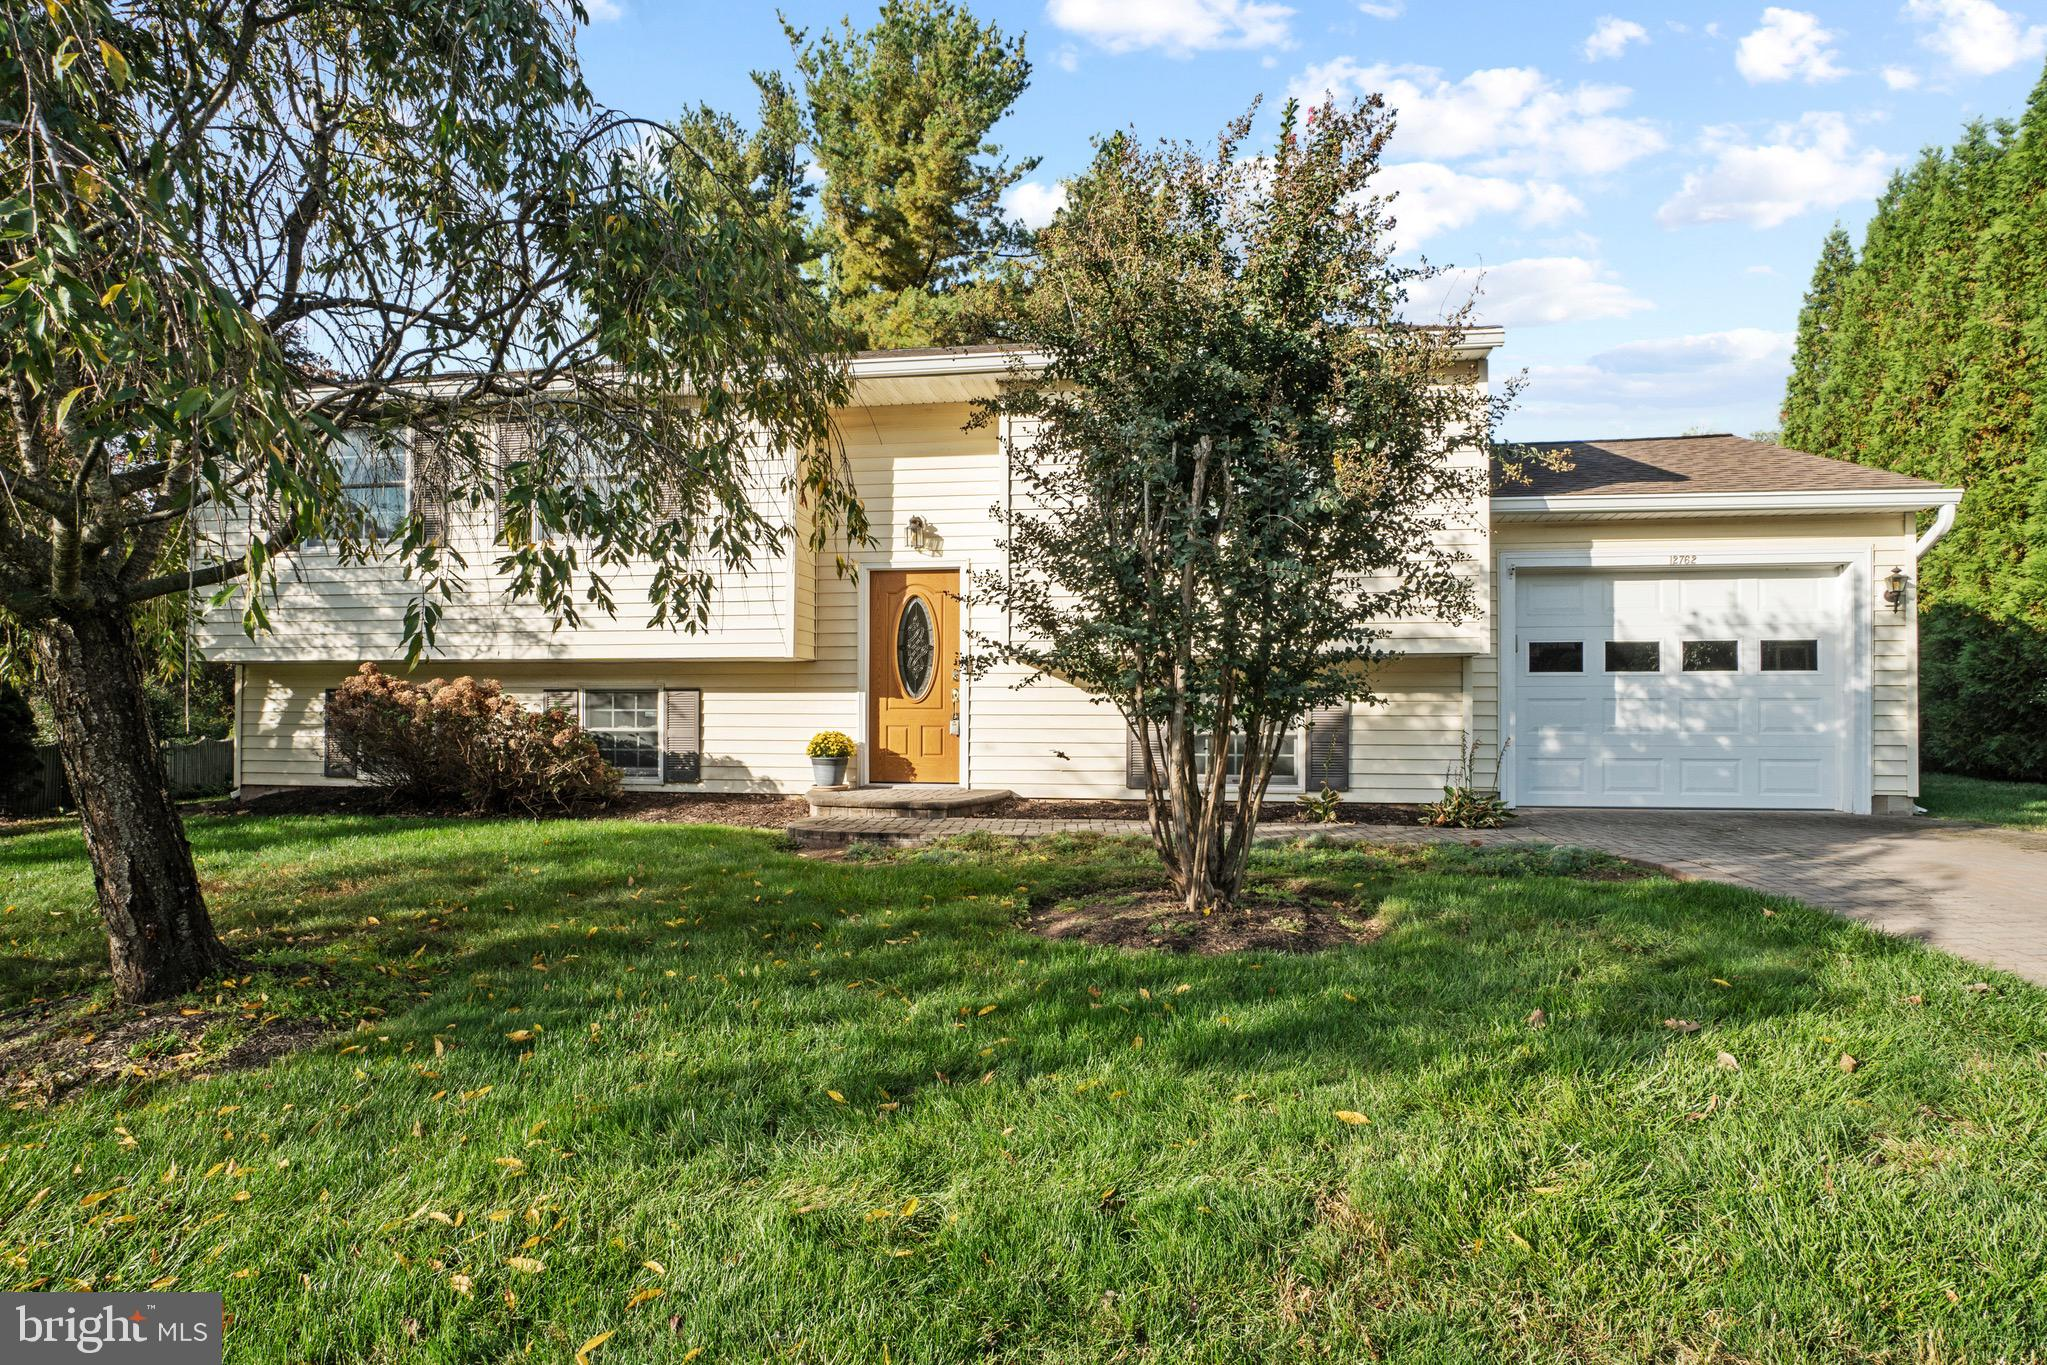 PROFESSIONAL PHOTOS COMING TUESDAY 10/26! Charming 3 bedroom/2 full bath home on a pretty .26 acre l